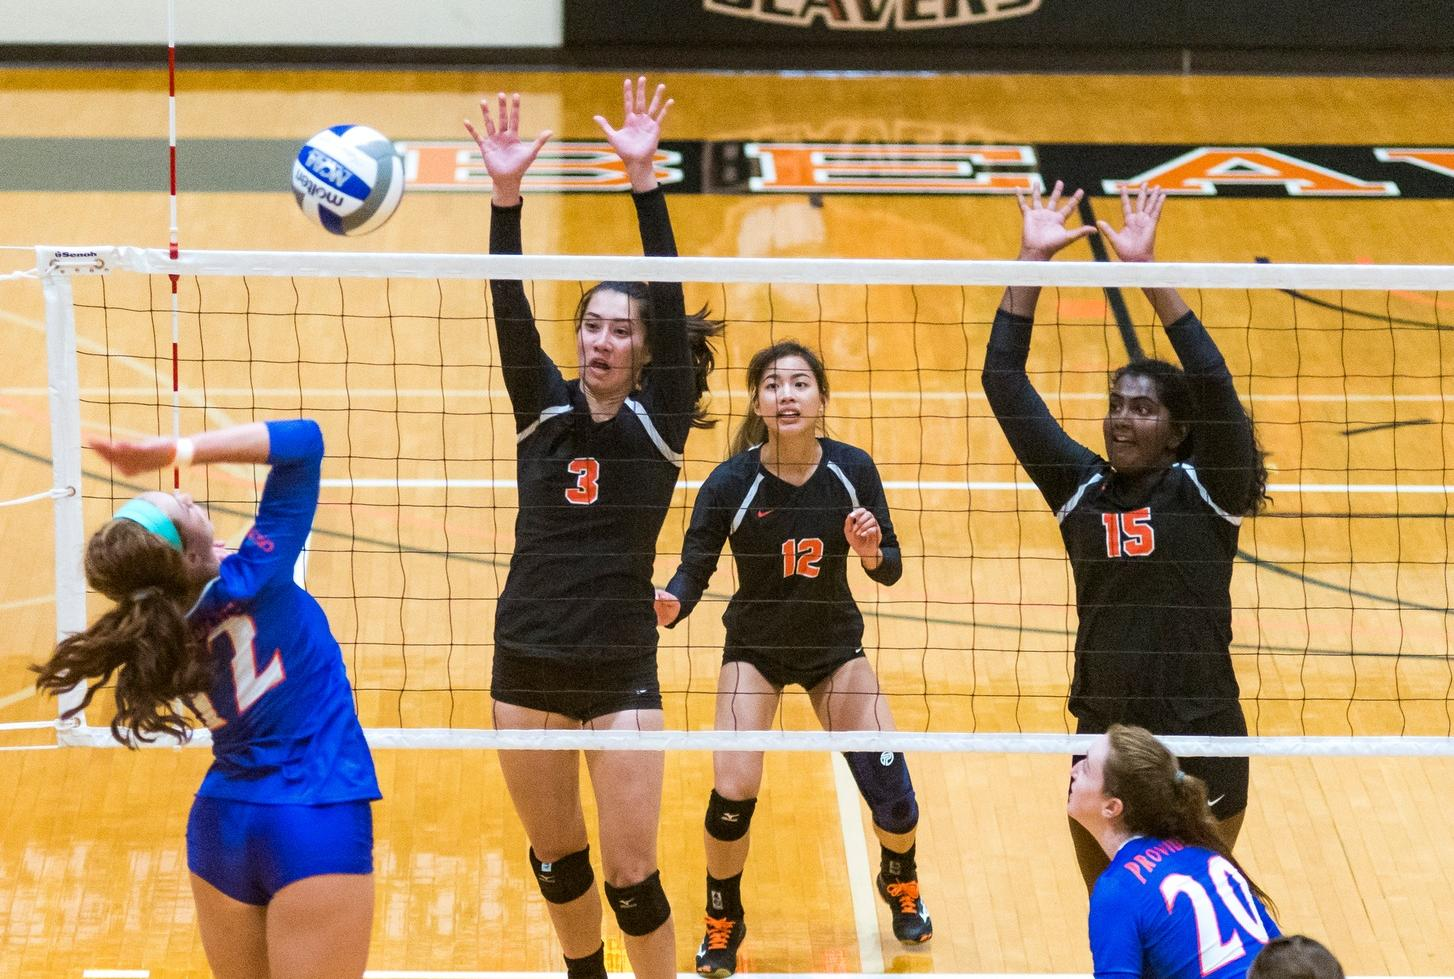 Yang Leads with Six Kills at CMS